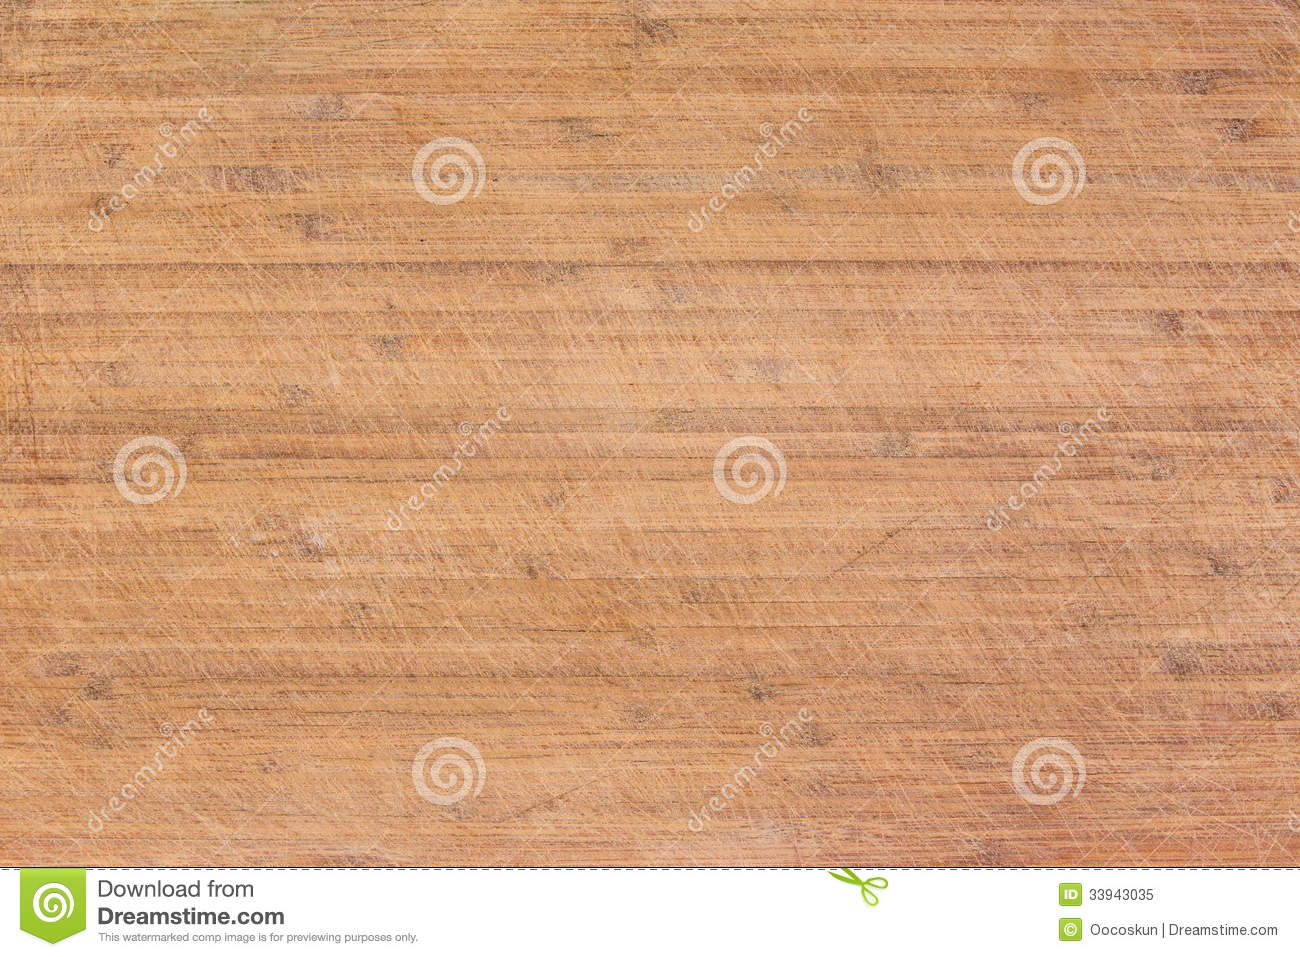 cutting board wallpaper on - photo #22